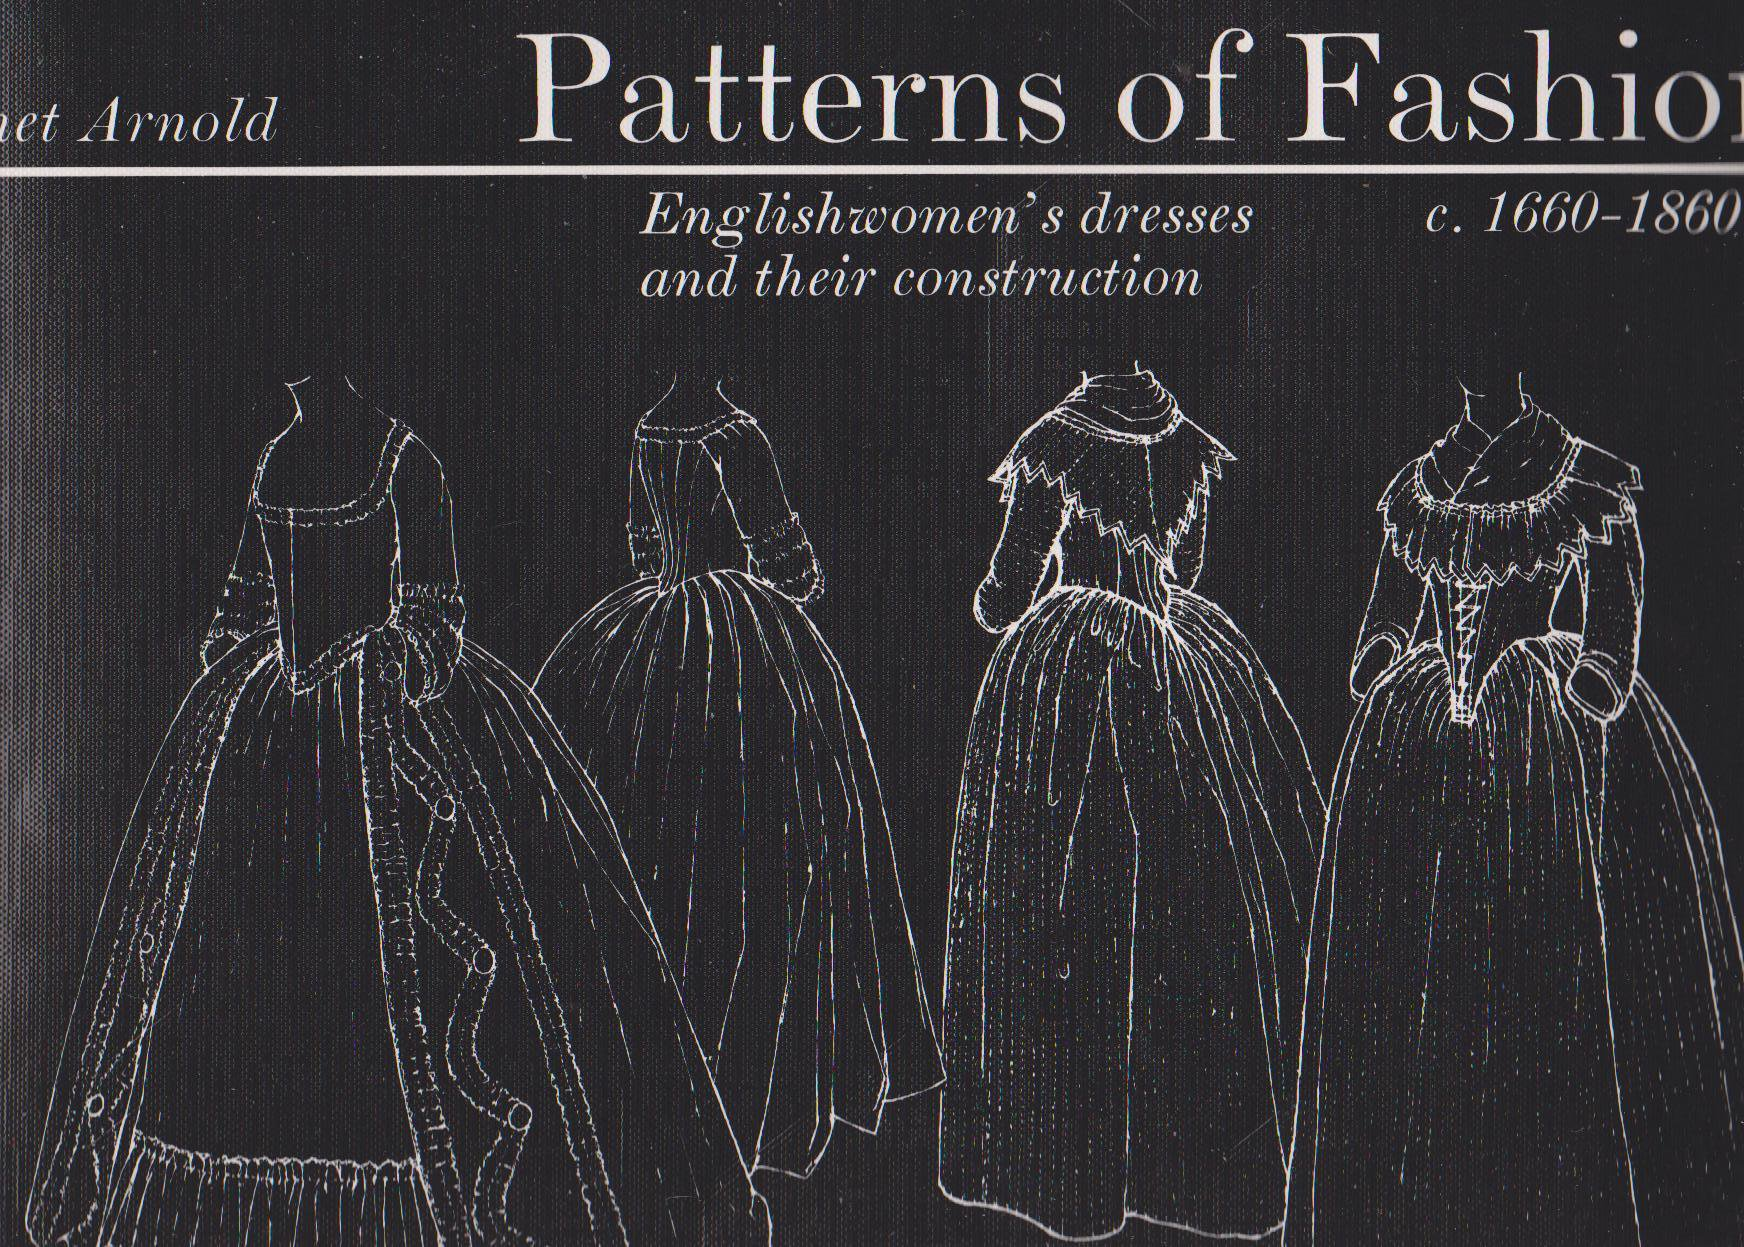 Patterns of fashion - Janet Arnold - Snowshill Collection - Eighteenth Century Costume Patterns - History of English Costume - Patterns for Georgian Clothing - Robe a la Francais - Pet-en-lair - Court Mantuas - 18th Century Dress - What people wore:18th cent - HandBound Costumes